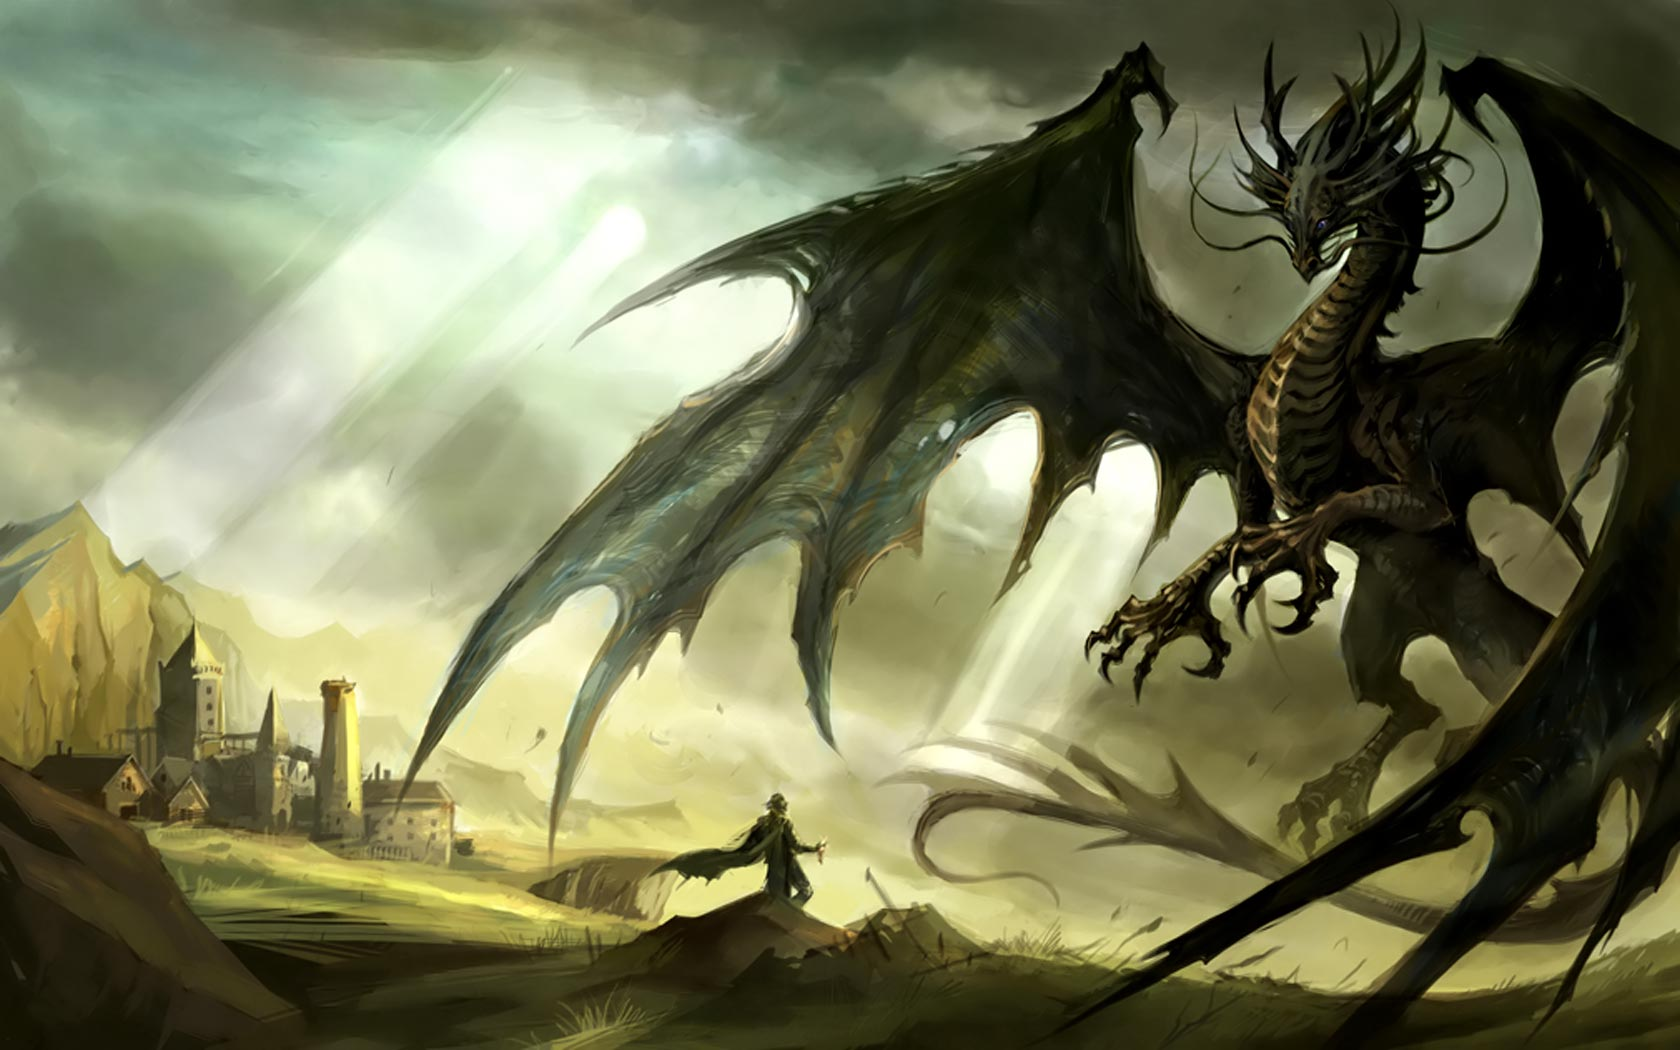 Dragon and Knight desktop backgrounds Desktop Wallpaper 1680x1050